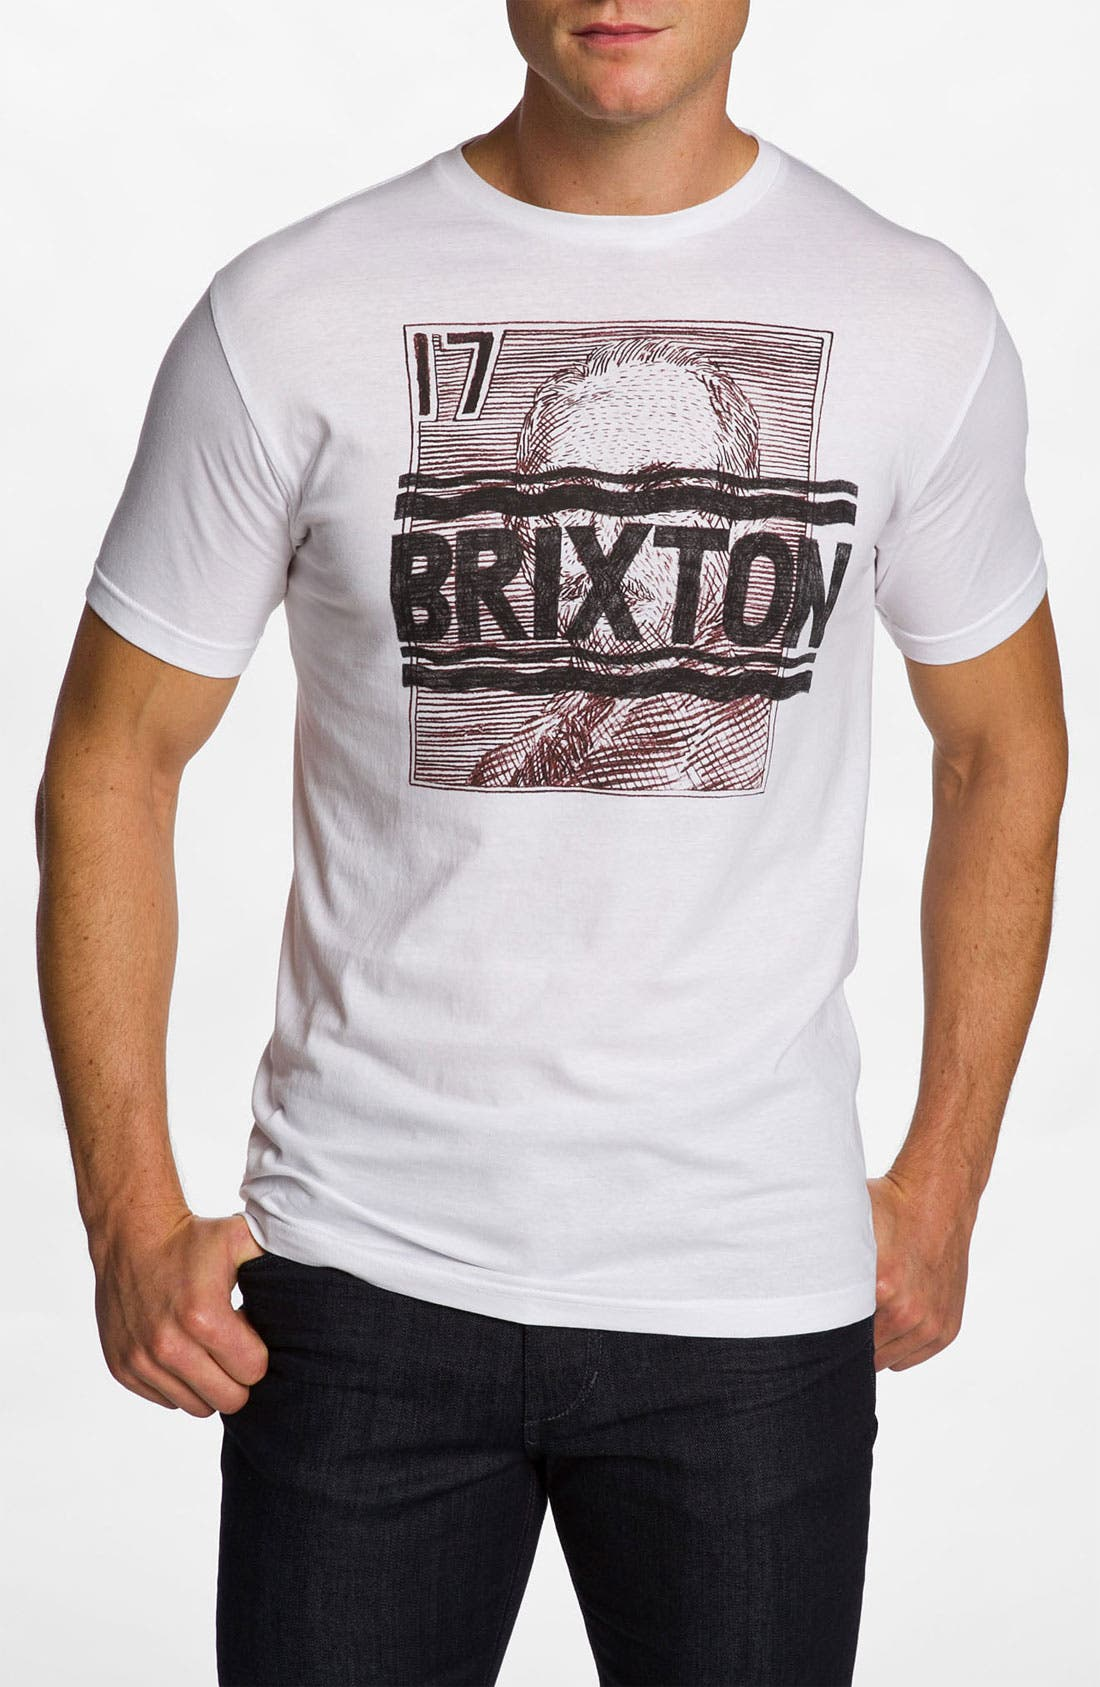 Alternate Image 1 Selected - Brixton 'Courier' Graphic T-Shirt